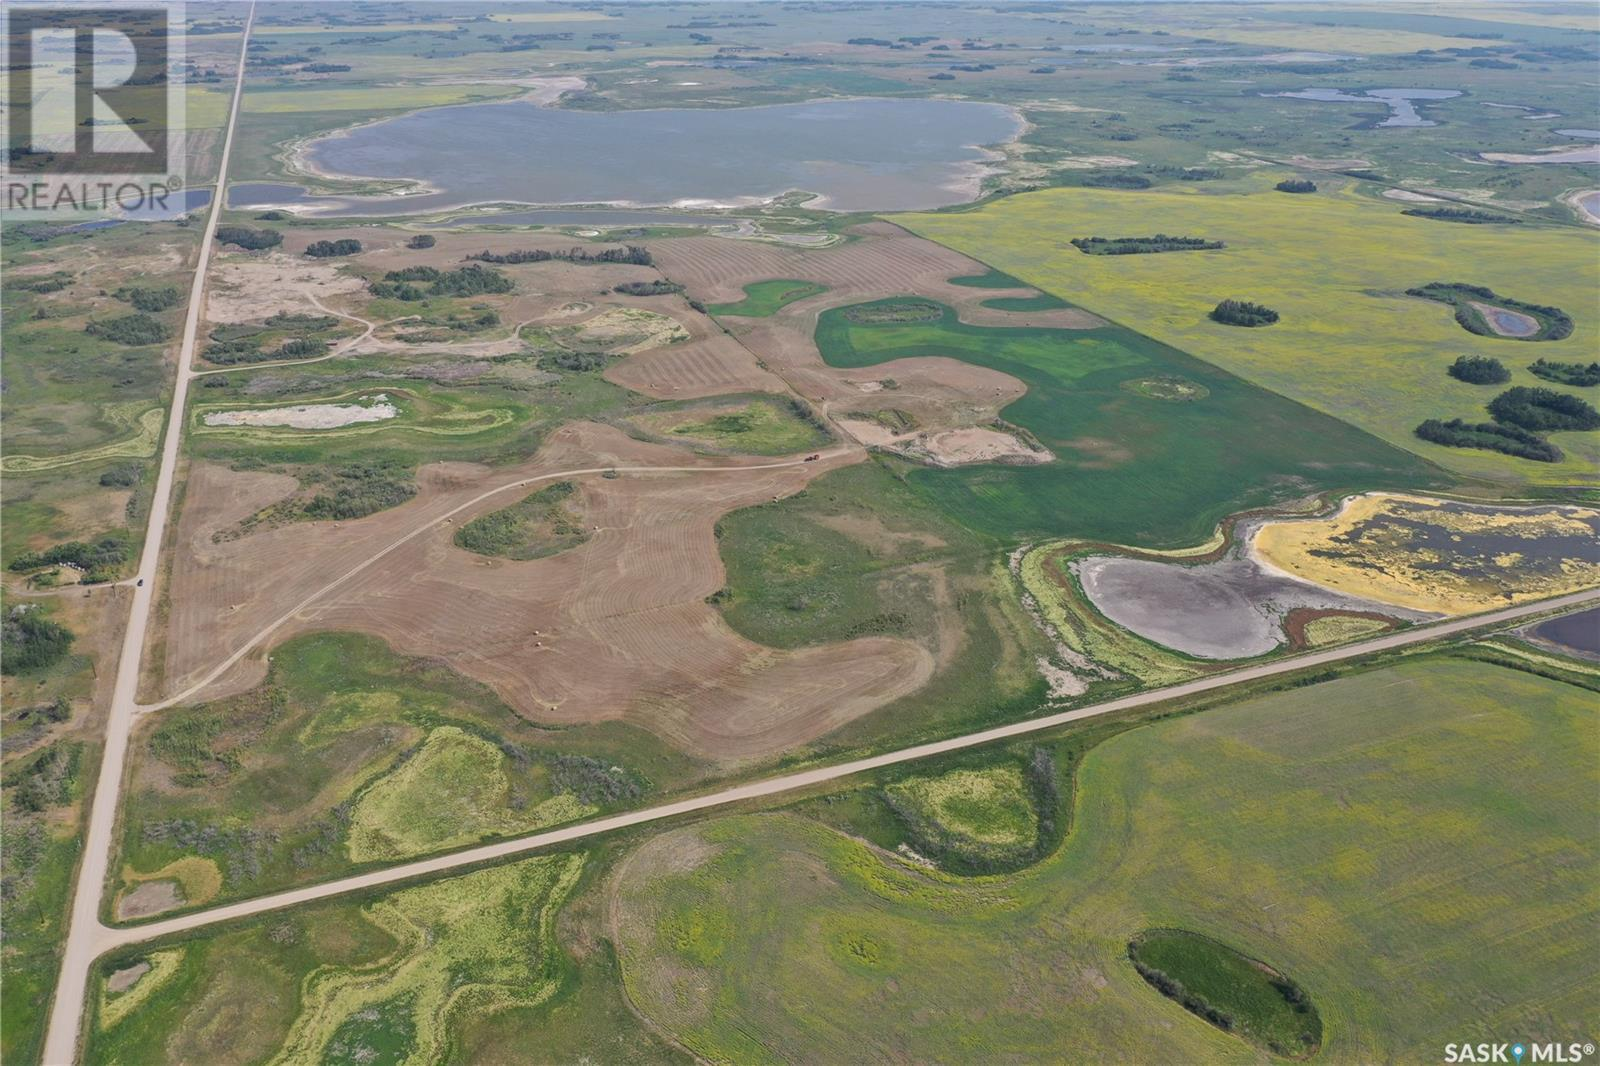 residential property for For sale at Colonsay Rm No. 342, Saskatchewan